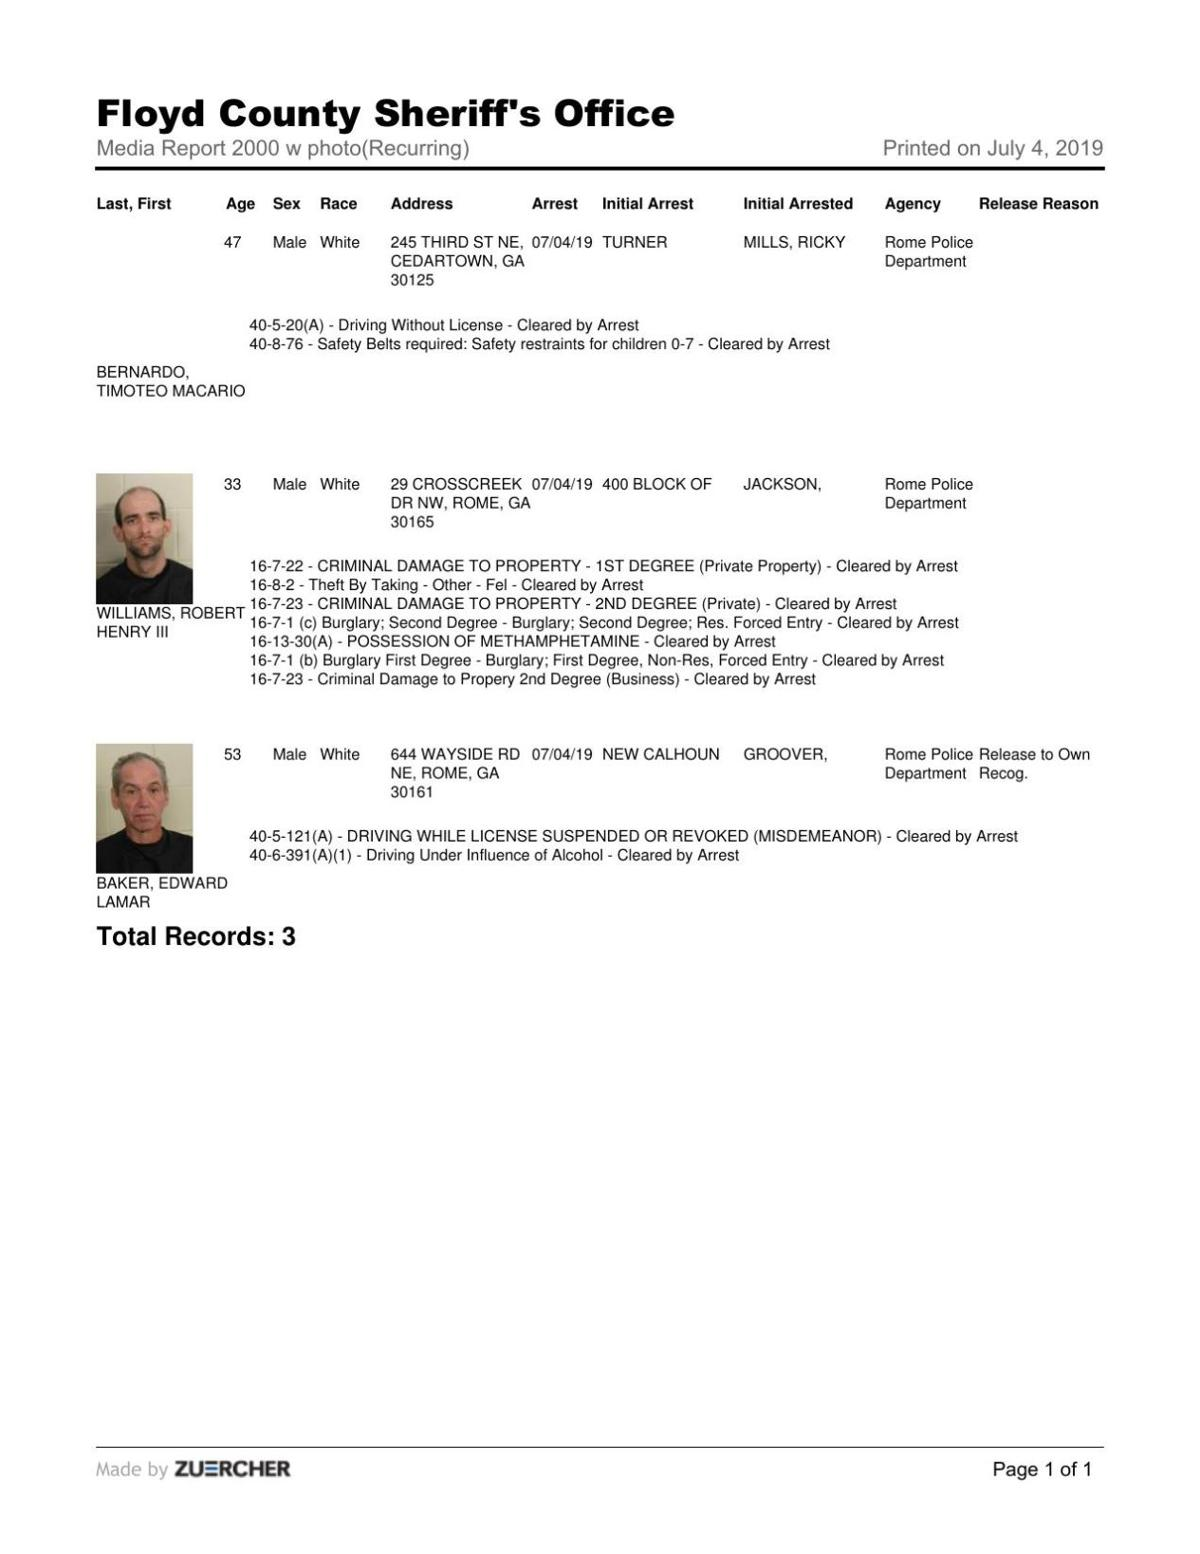 Floyd County Jail report for Thursday, July 4